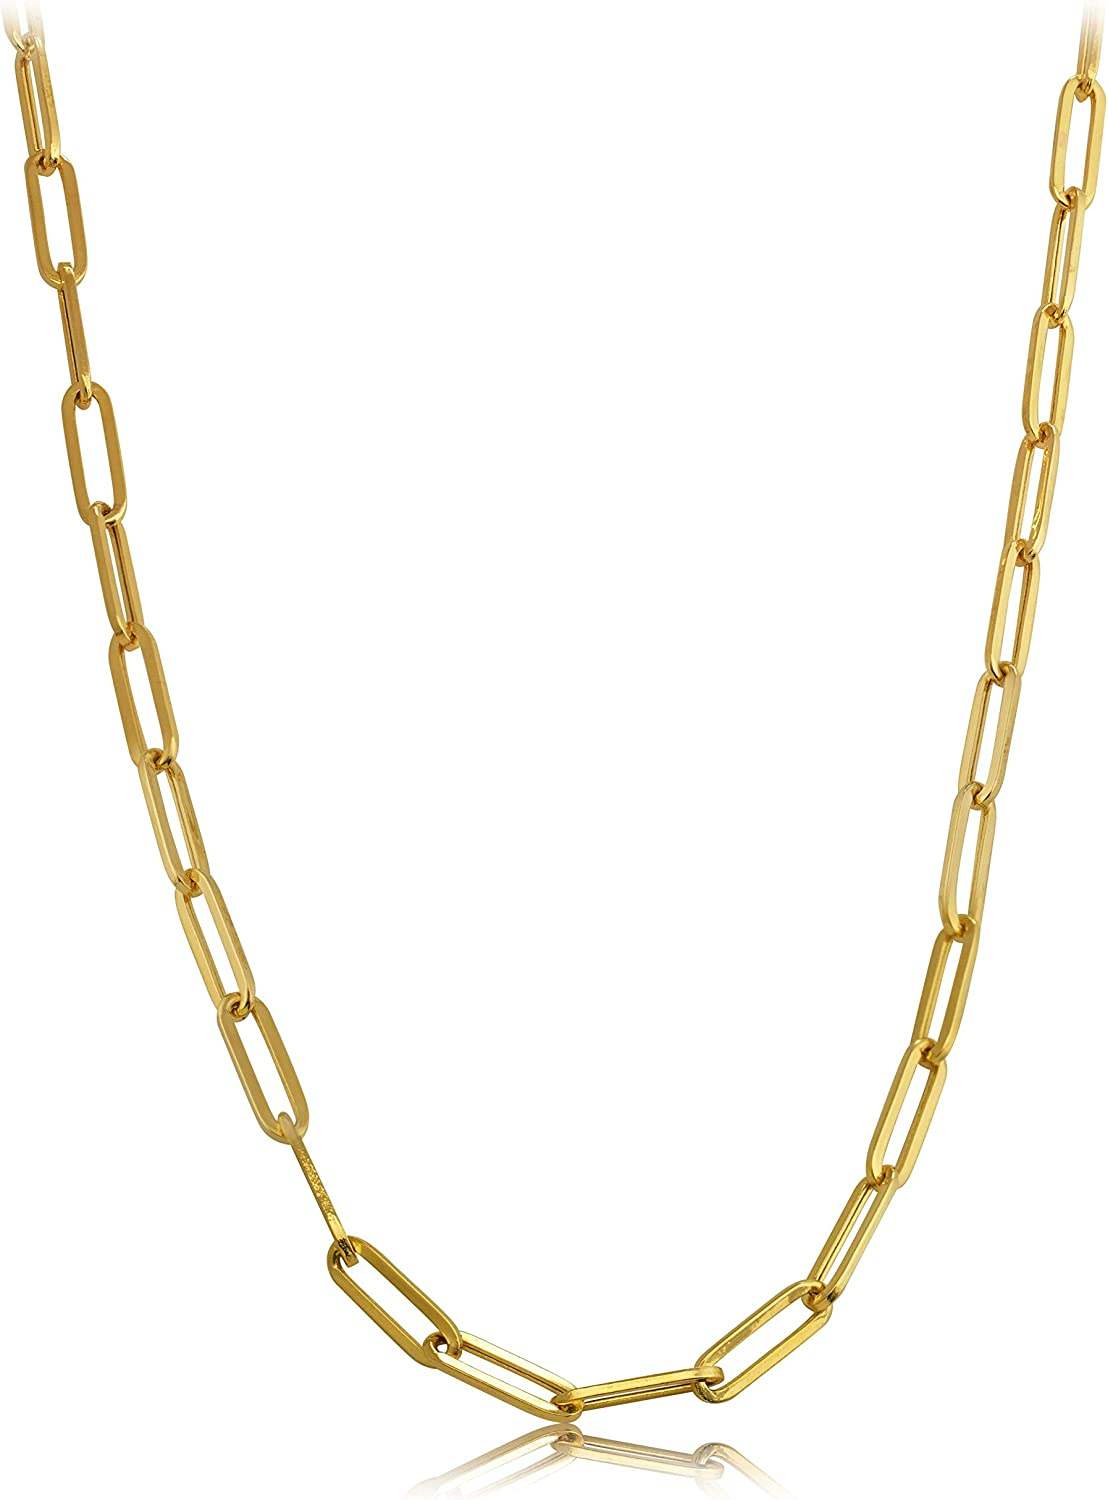 Excellent 14k Yellow Topics on TV Gold 4mm Link Clip Necklace Paper